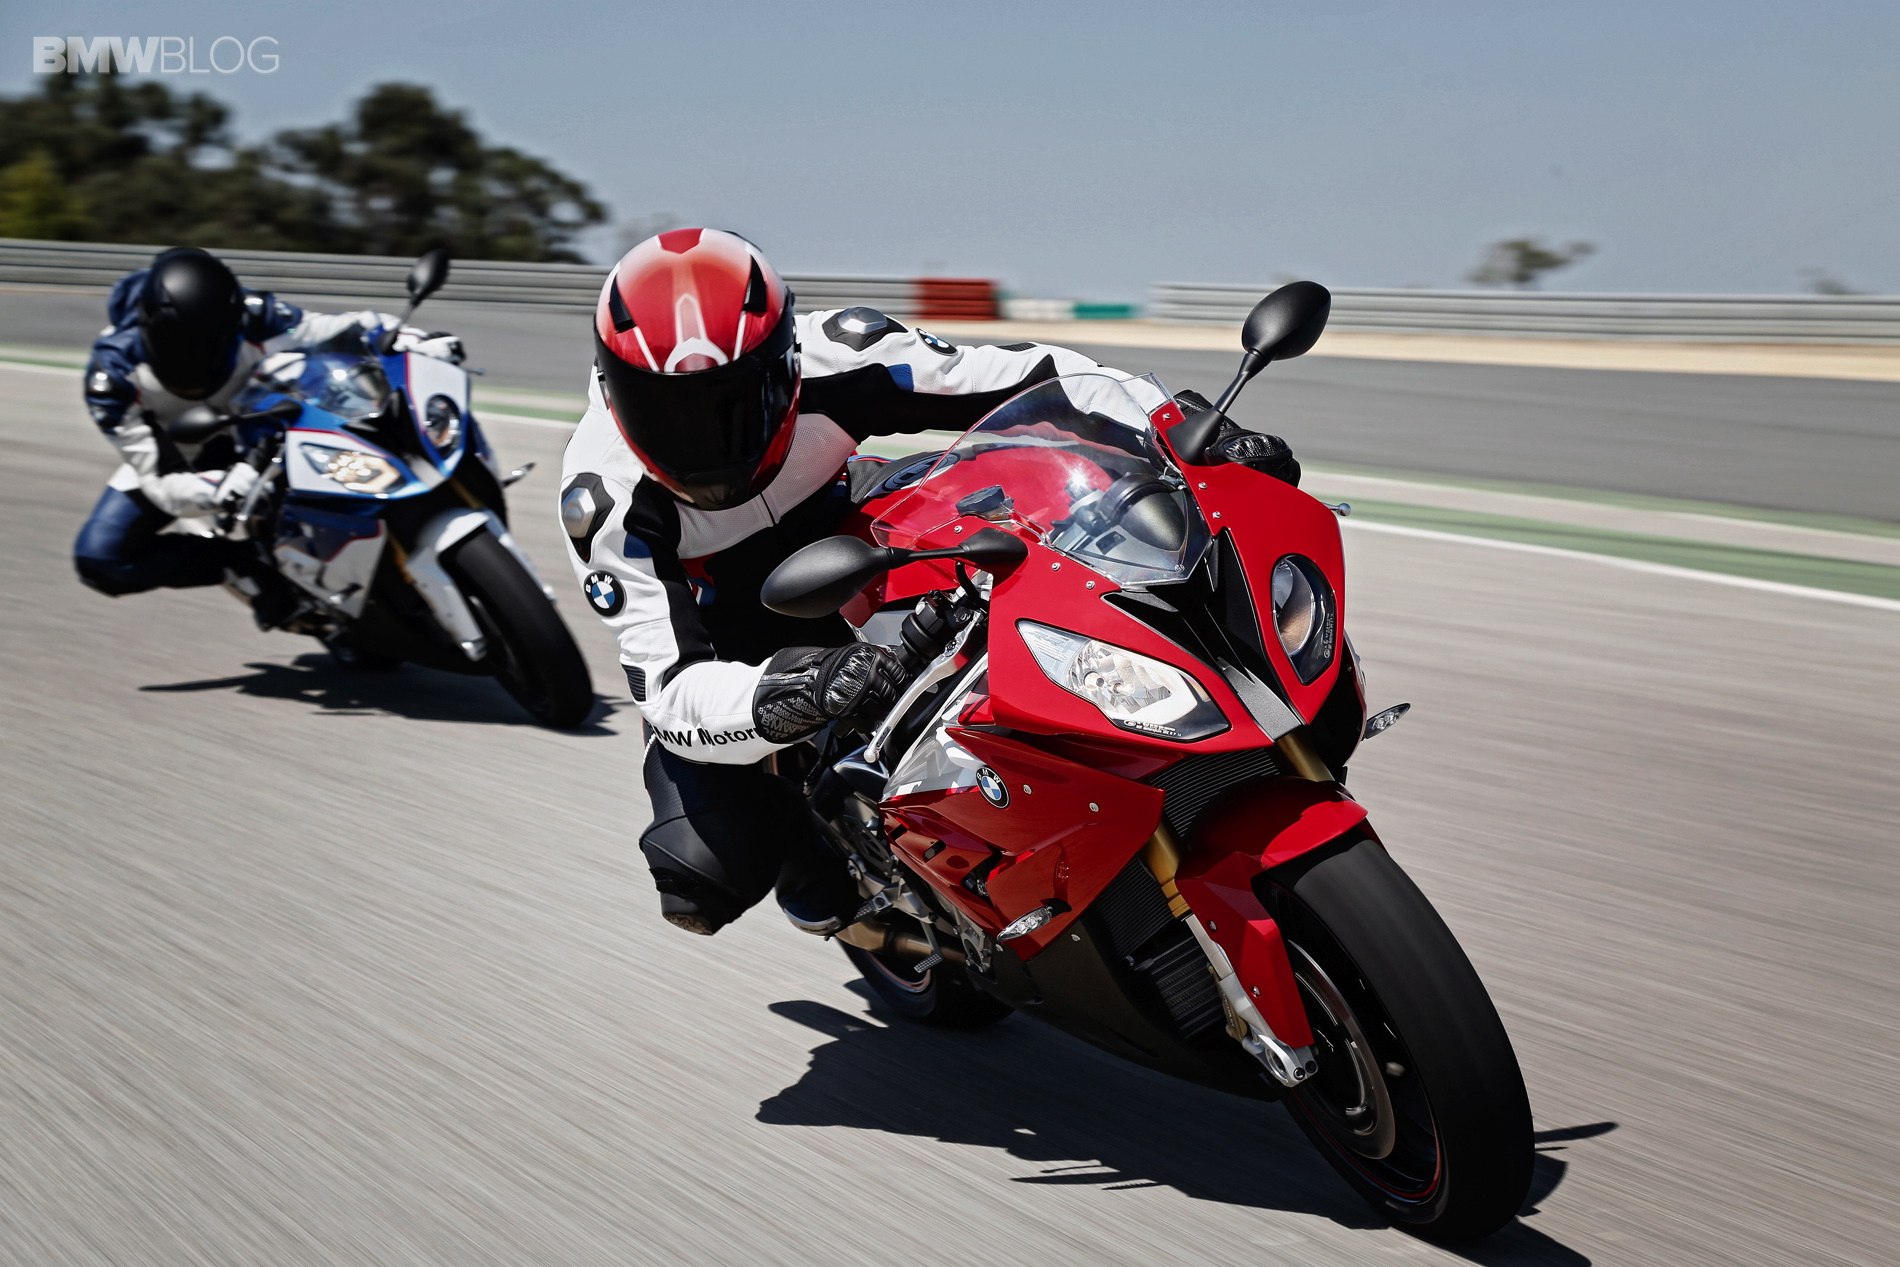 Bmw Motorrad Makes Abs Pro Available For S1000rr As A Retro Fit